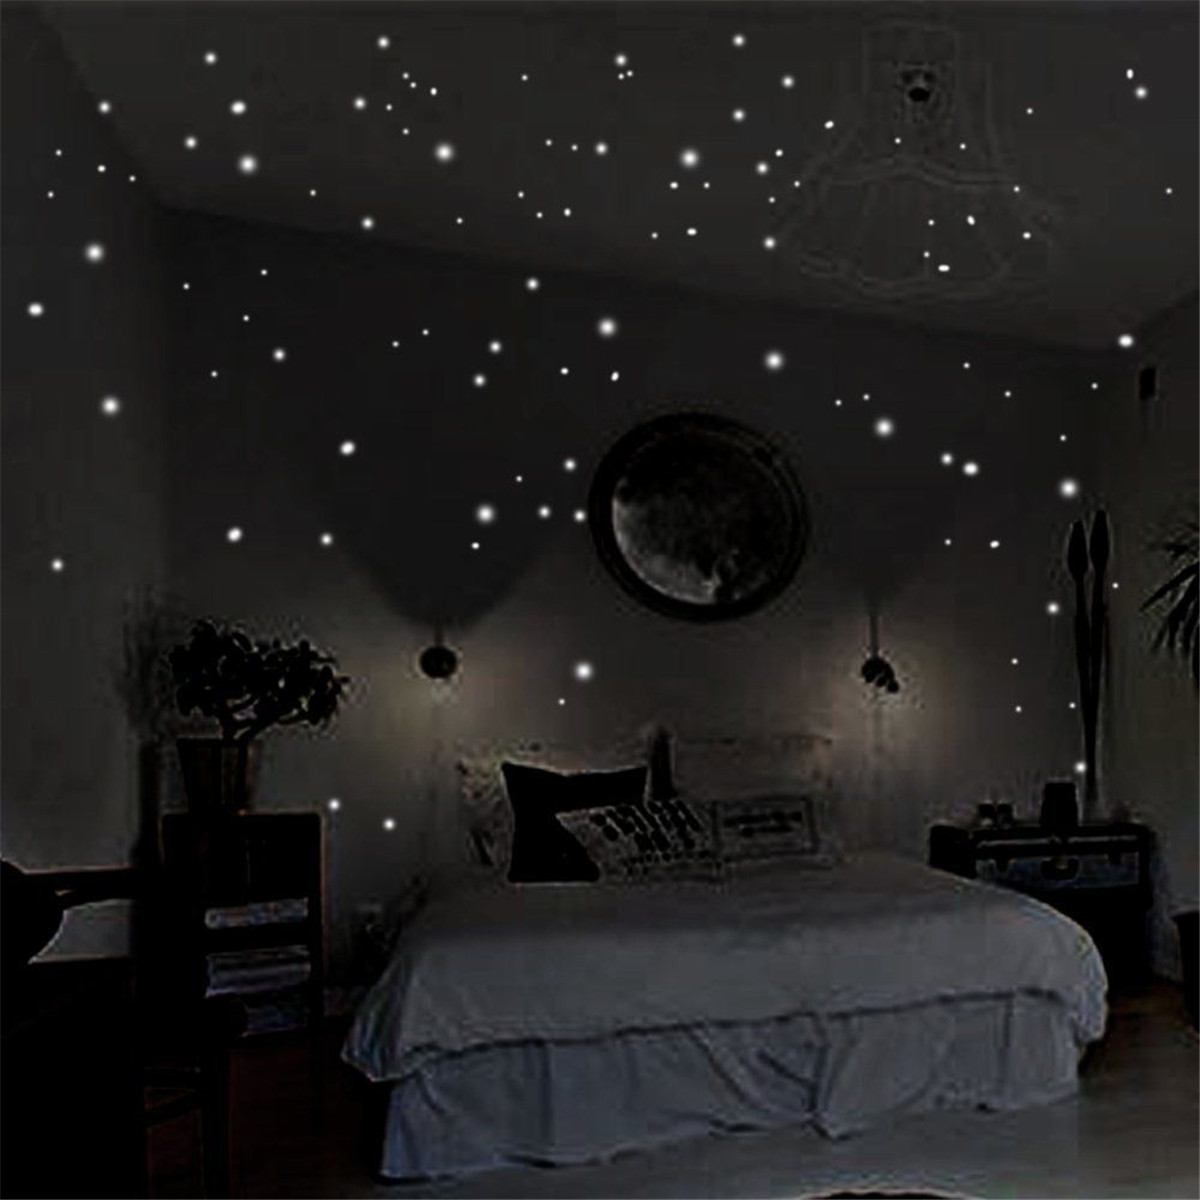 Buy Glow In The Dark Wall Stickers 400pcs